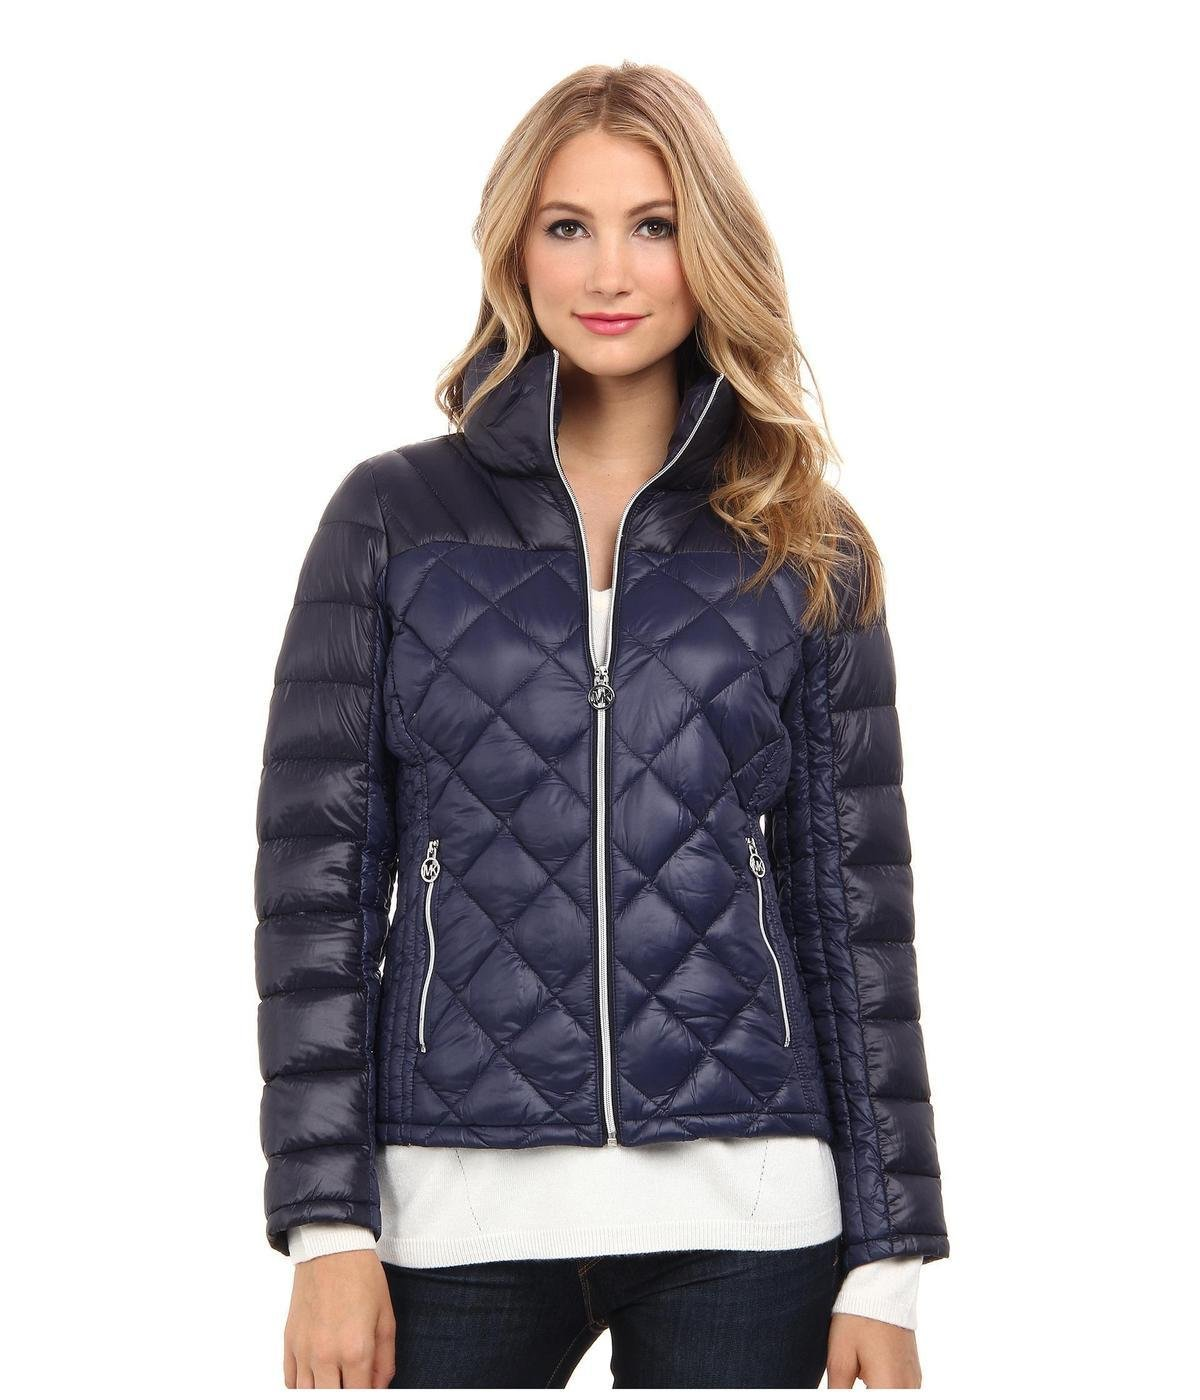 Black bubble jacket for womens